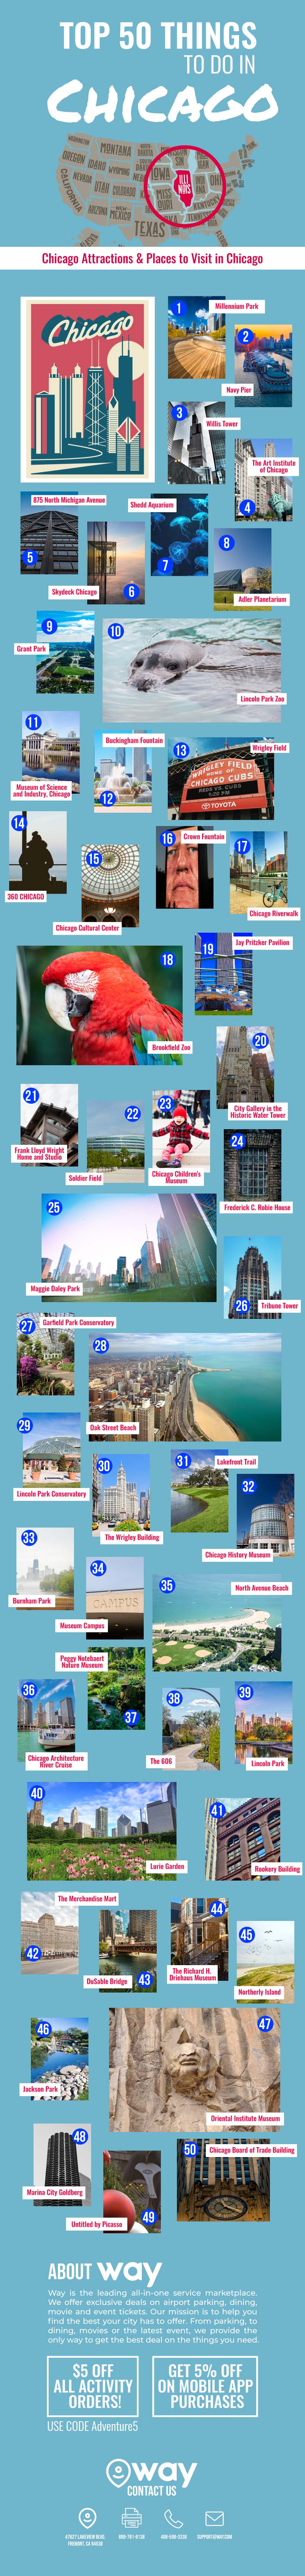 50 Must-Do, Must-See Places in Chicago - Infographic